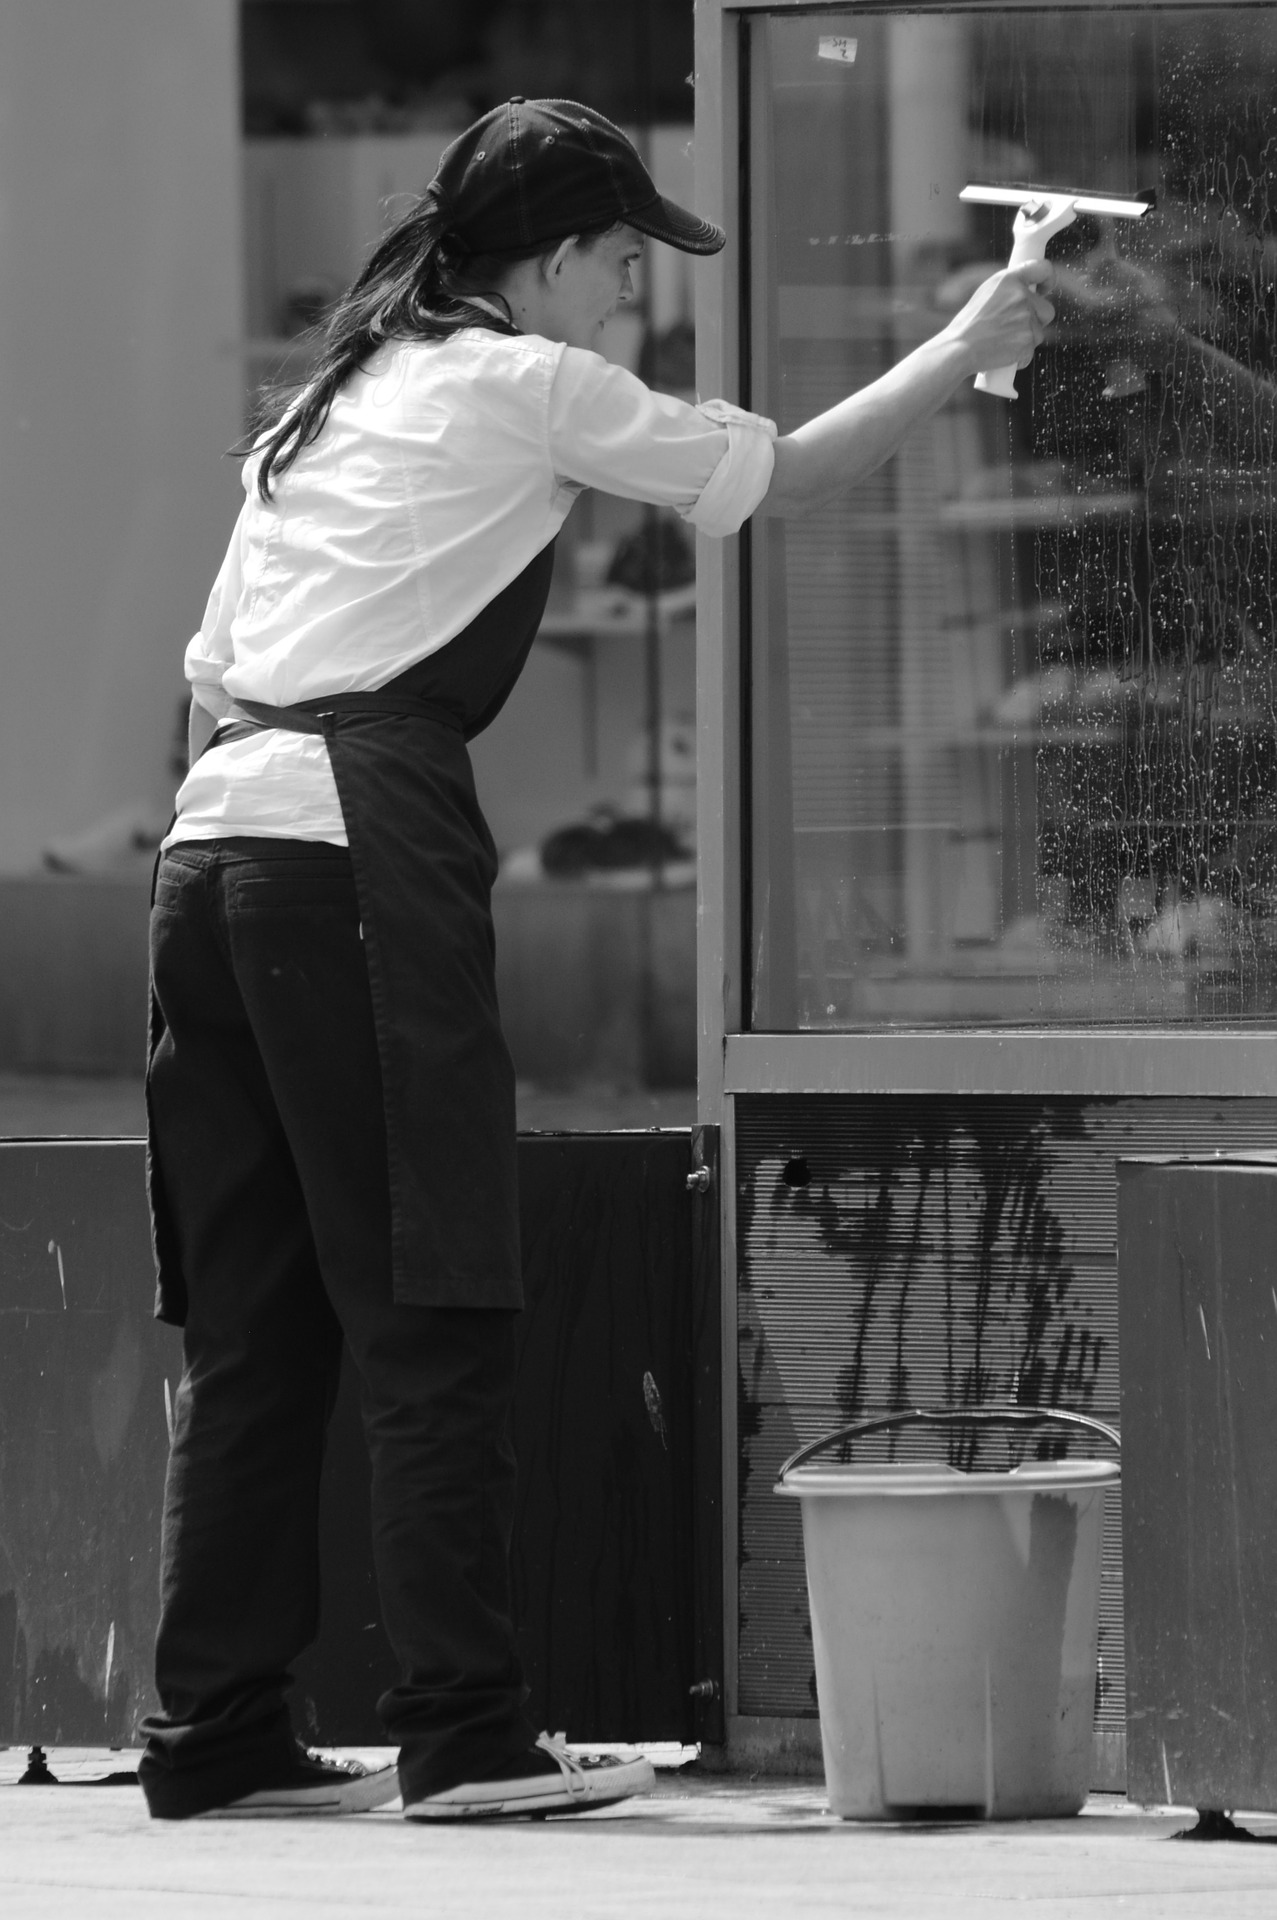 Self-employed as a window cleaner